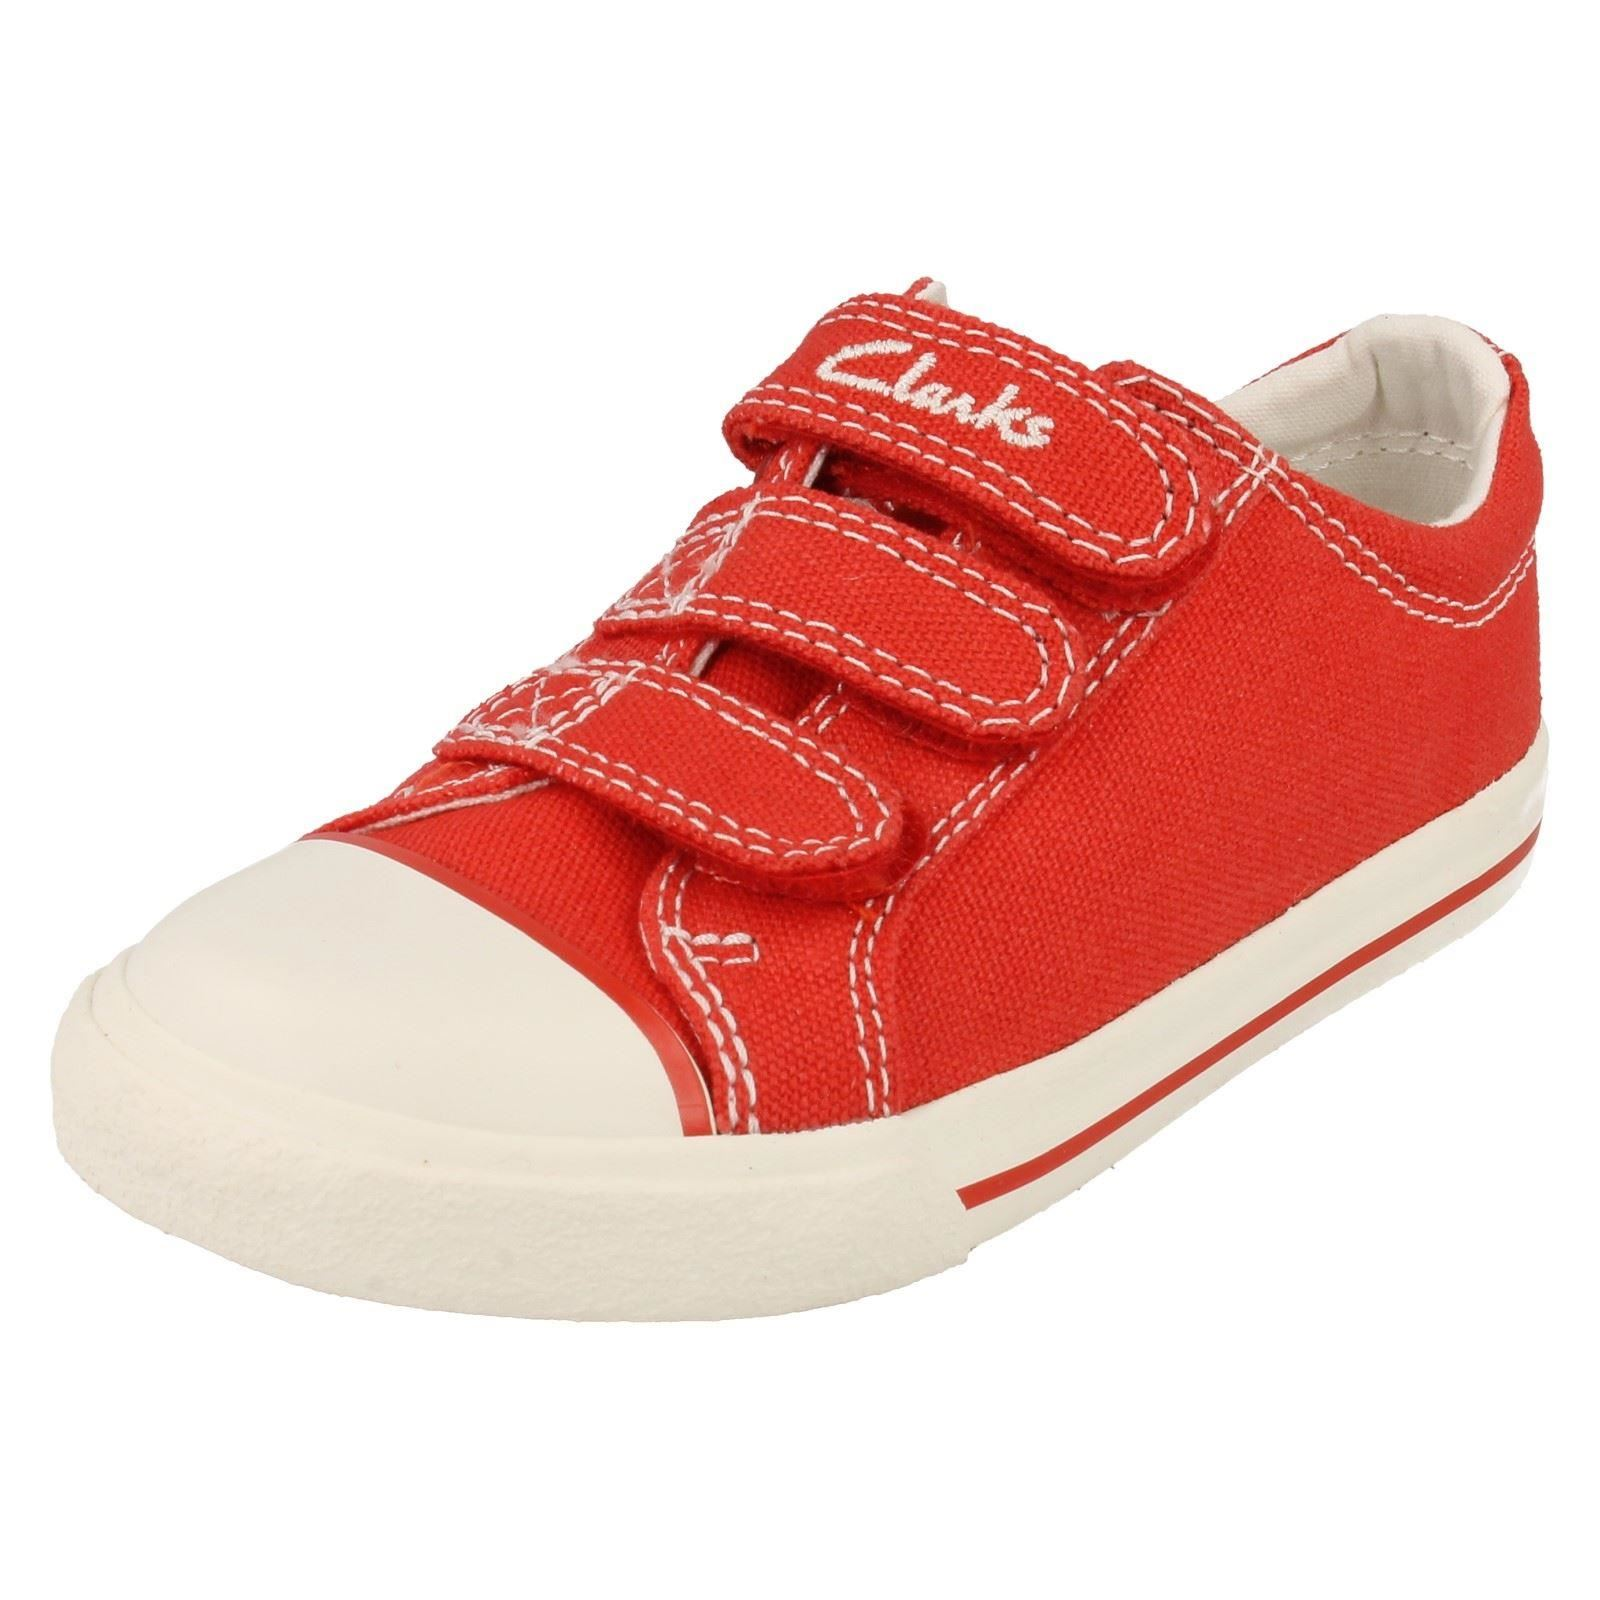 Boys Clarks Shoes Style - Halcy Sky